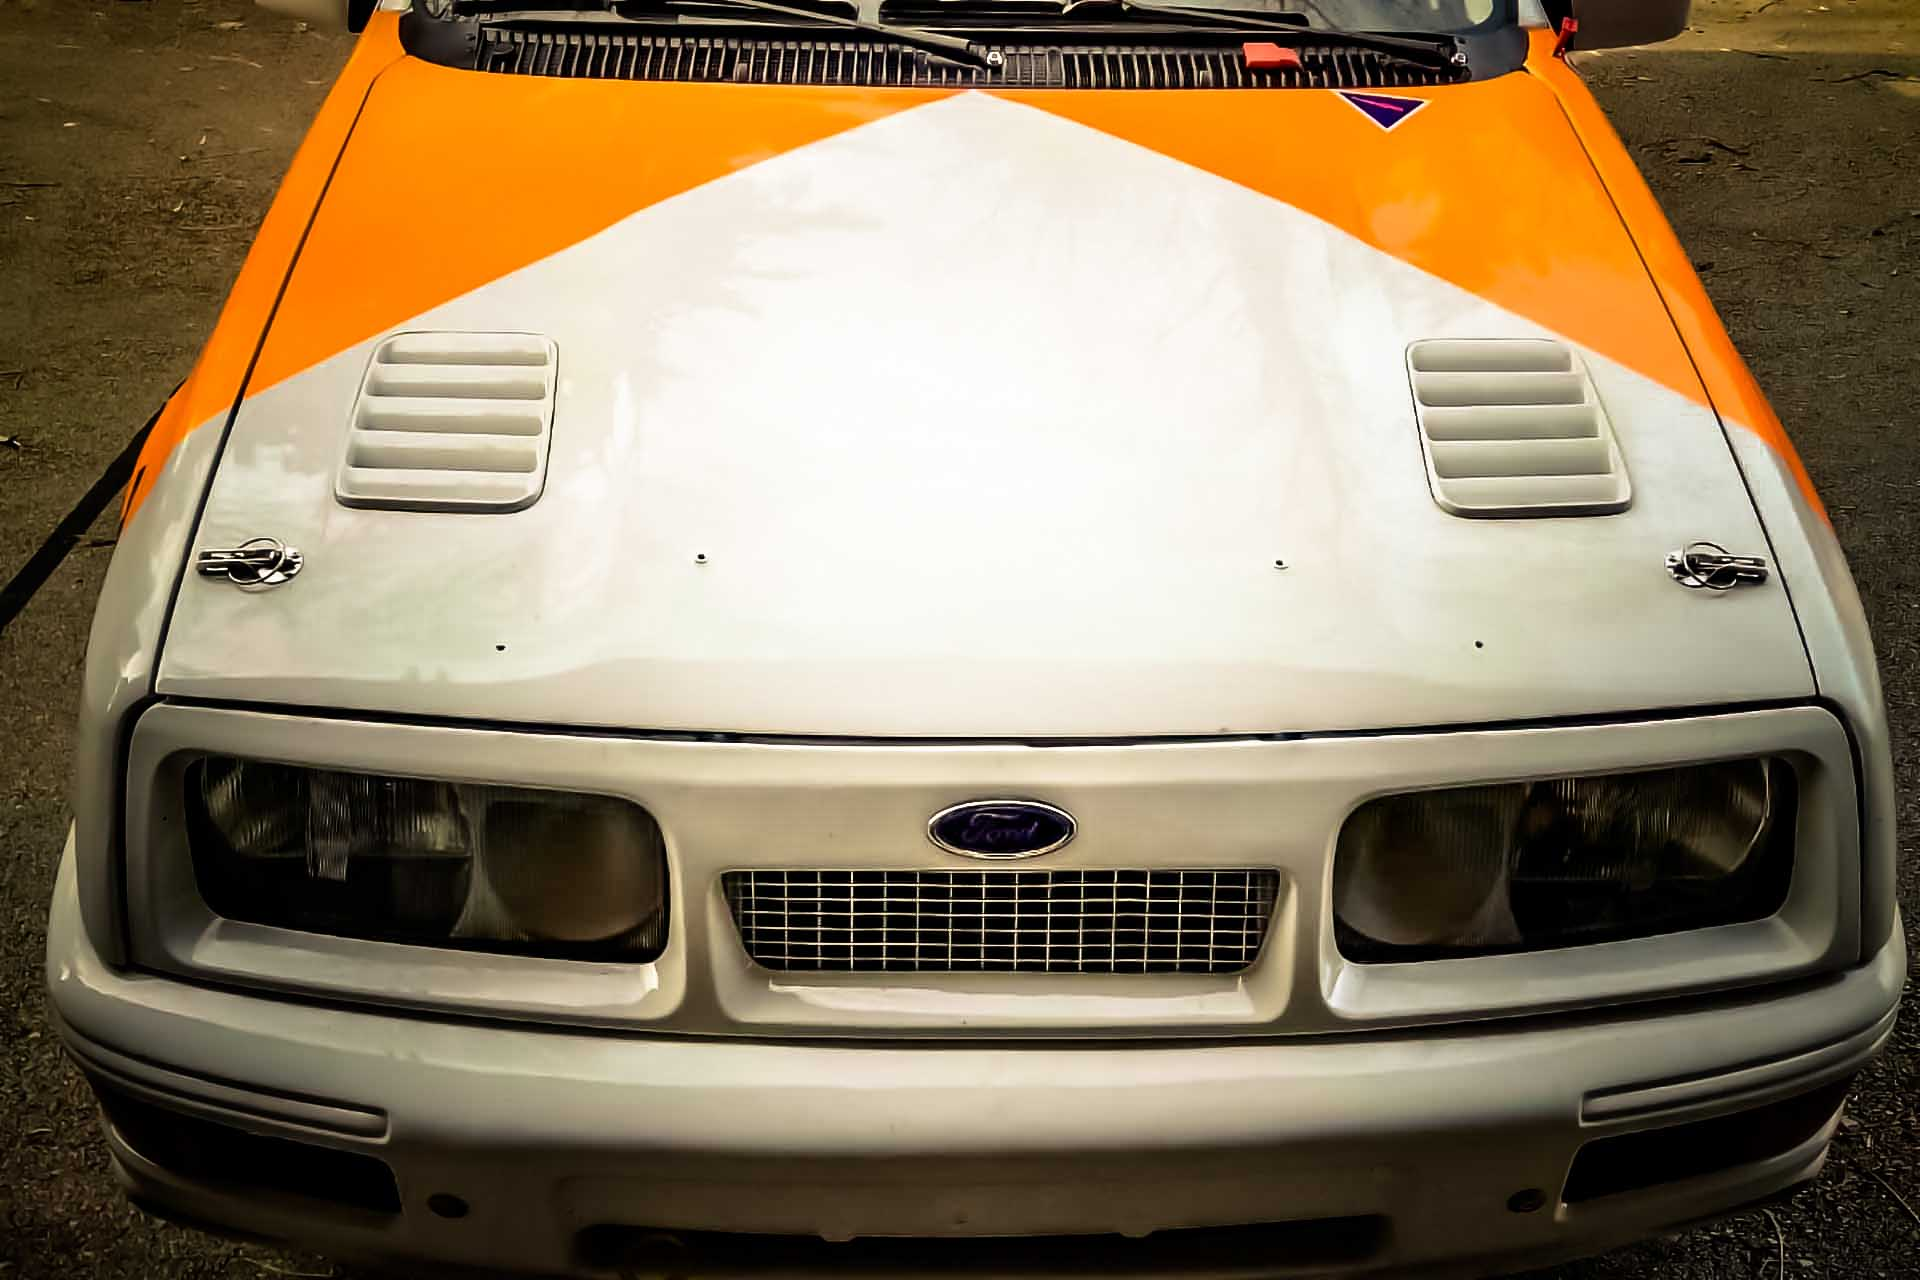 1986 Ford Sierra RS Cosworth Ruote Leggendarie header